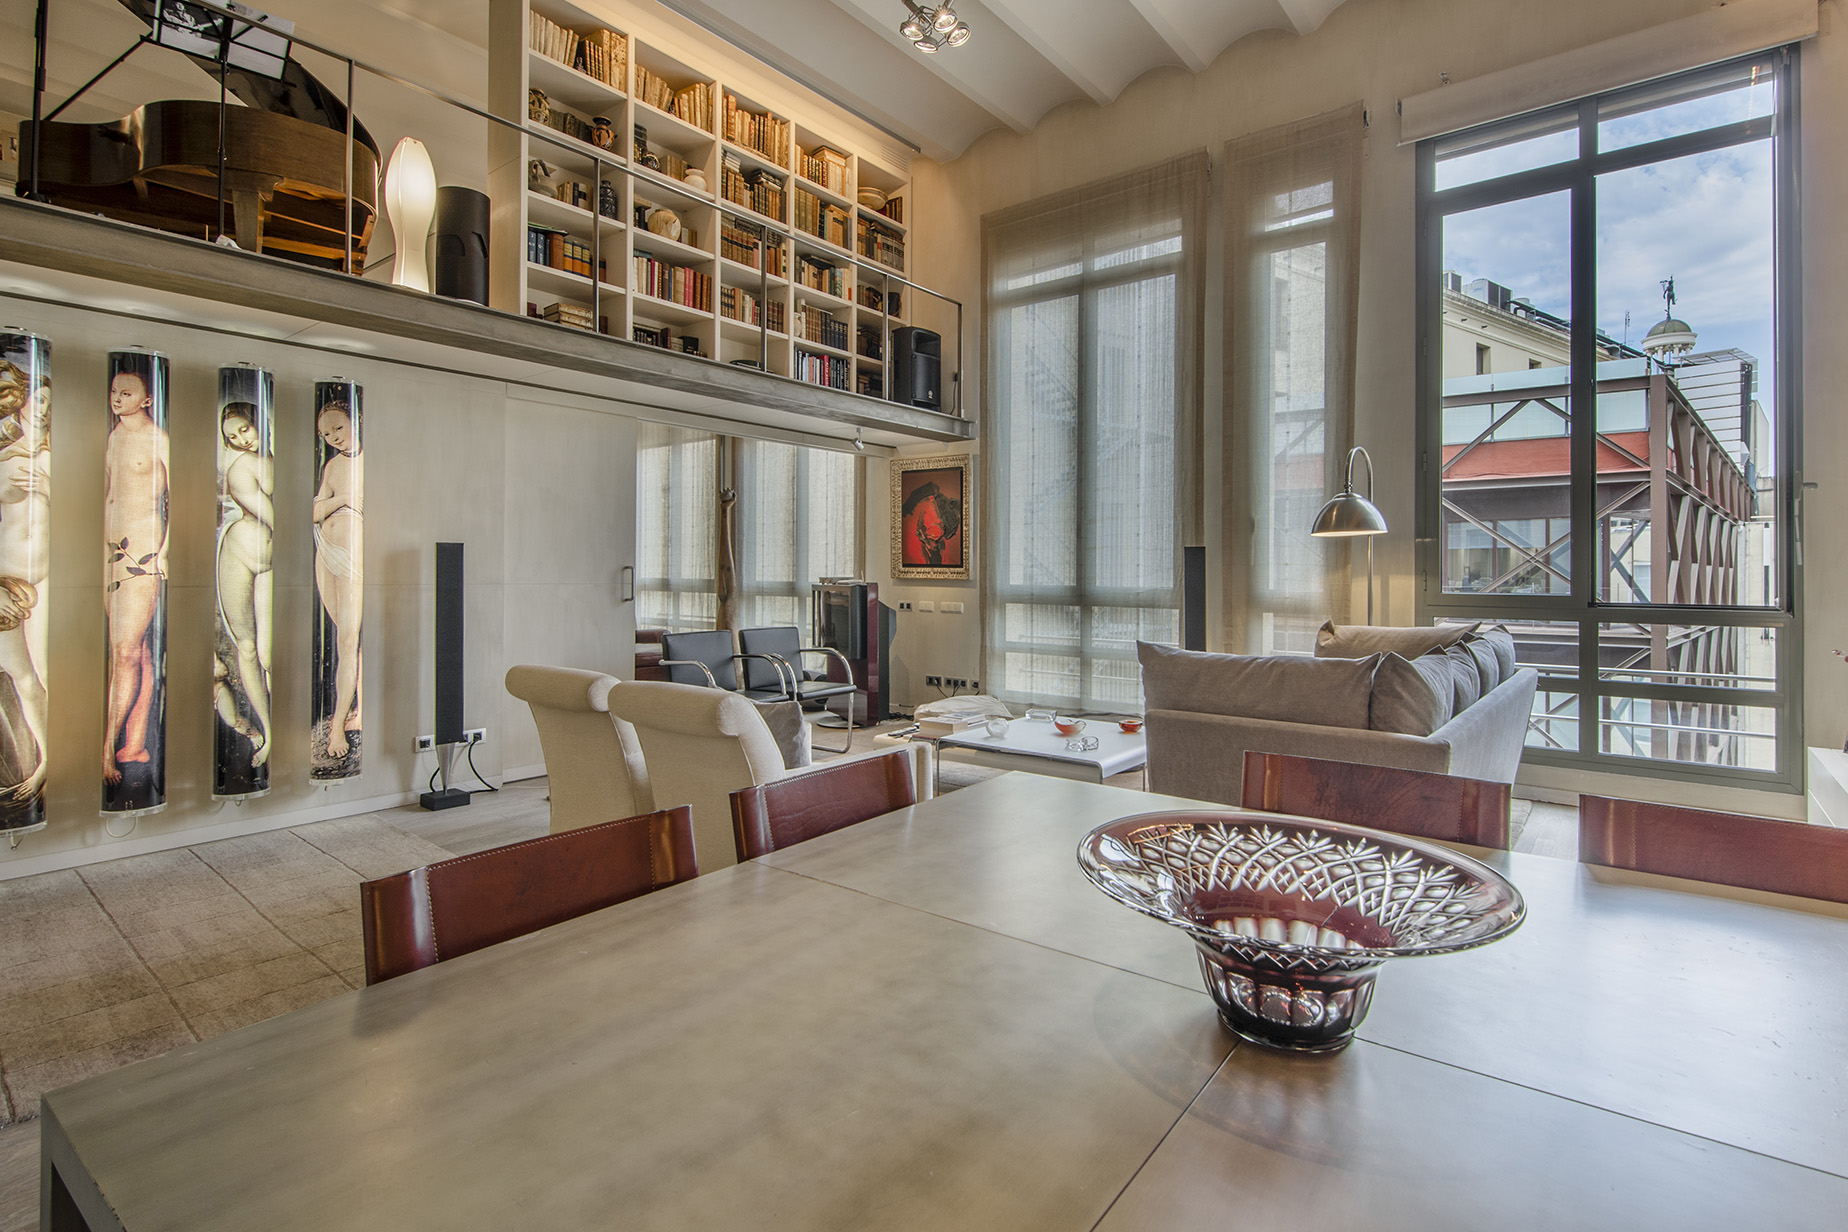 Appartement pour l Vente à Exquisite Luxury Duplex on Paseo de Gracia, Barcelona Eixample, Barcelona City, Barcelona, 08007 Espagne